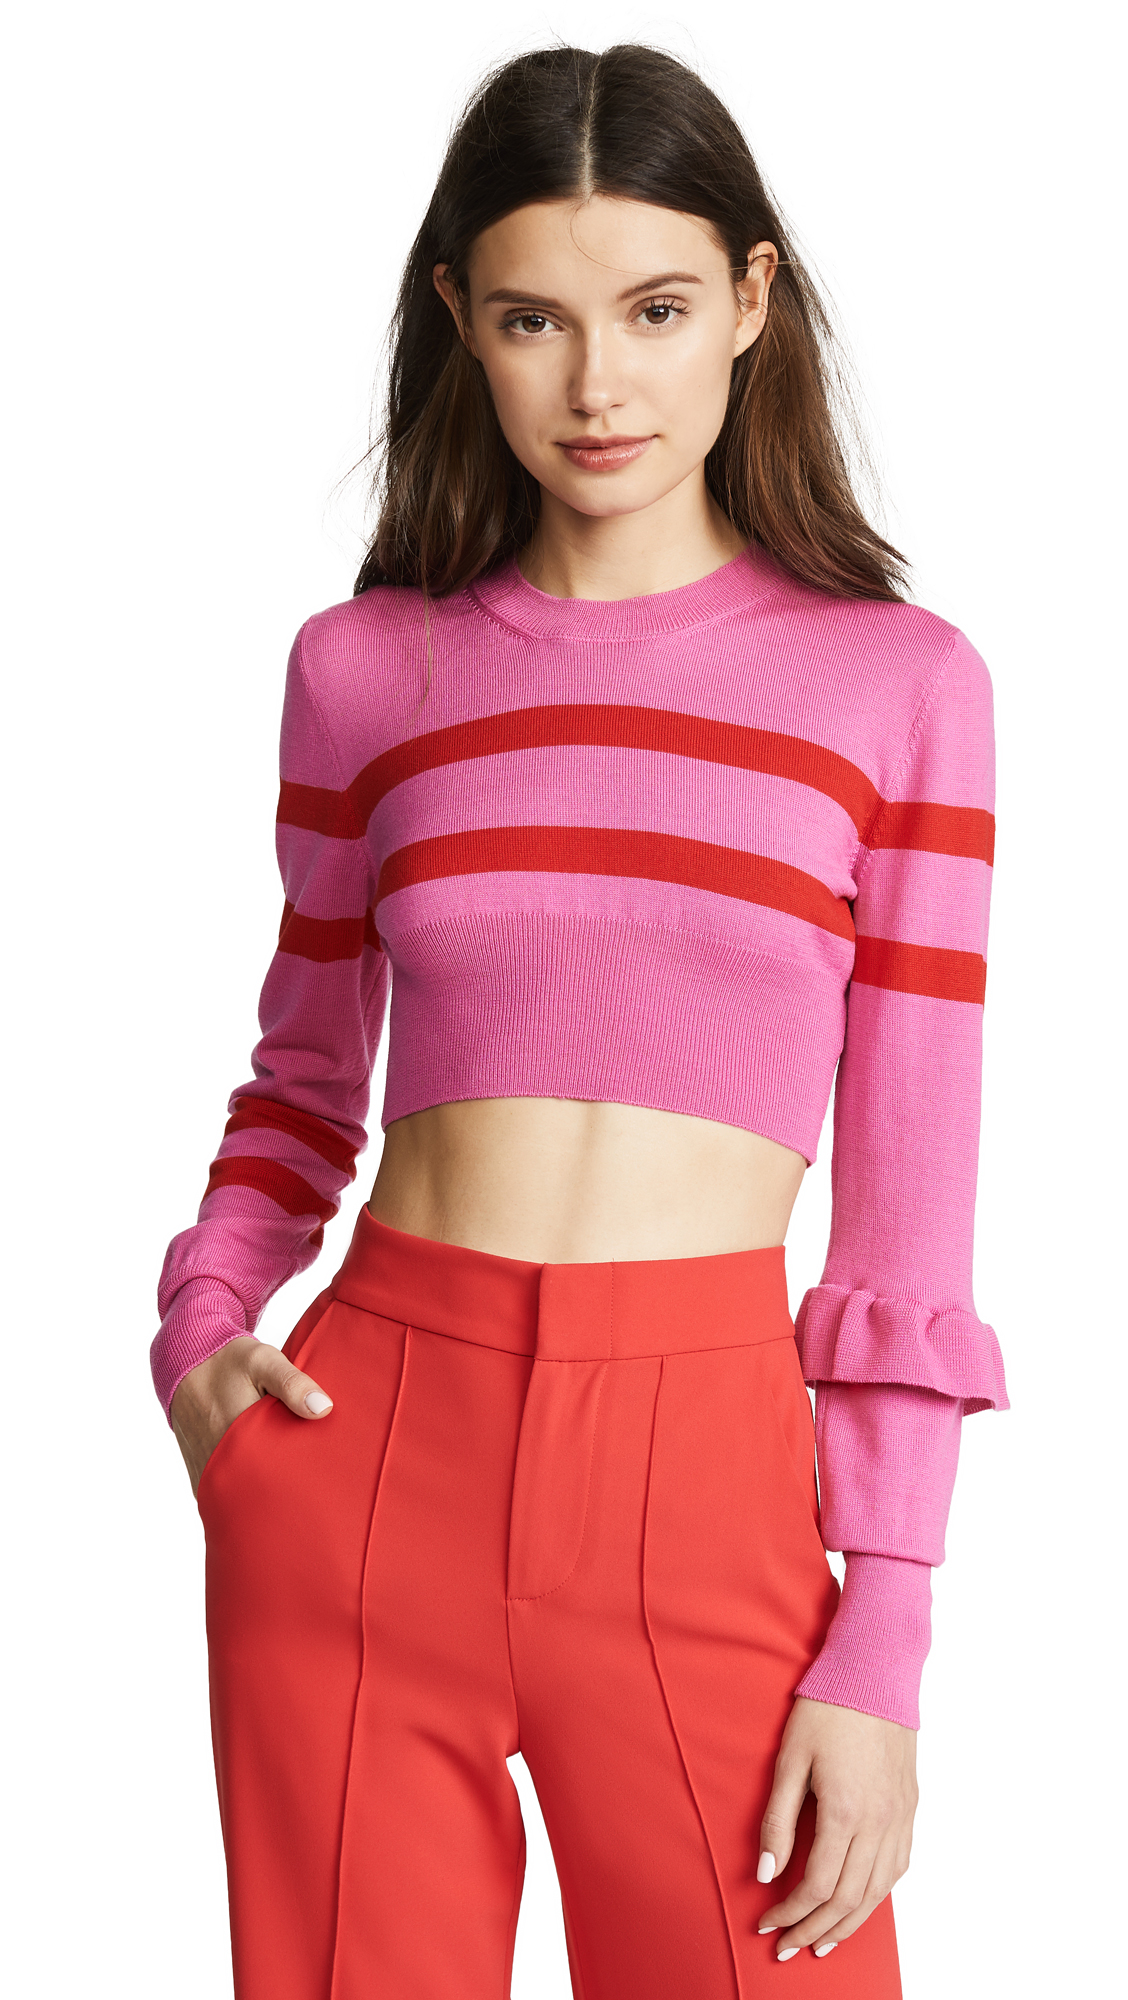 Maggie Marilyn The Believer Knit Top In Hot Pink